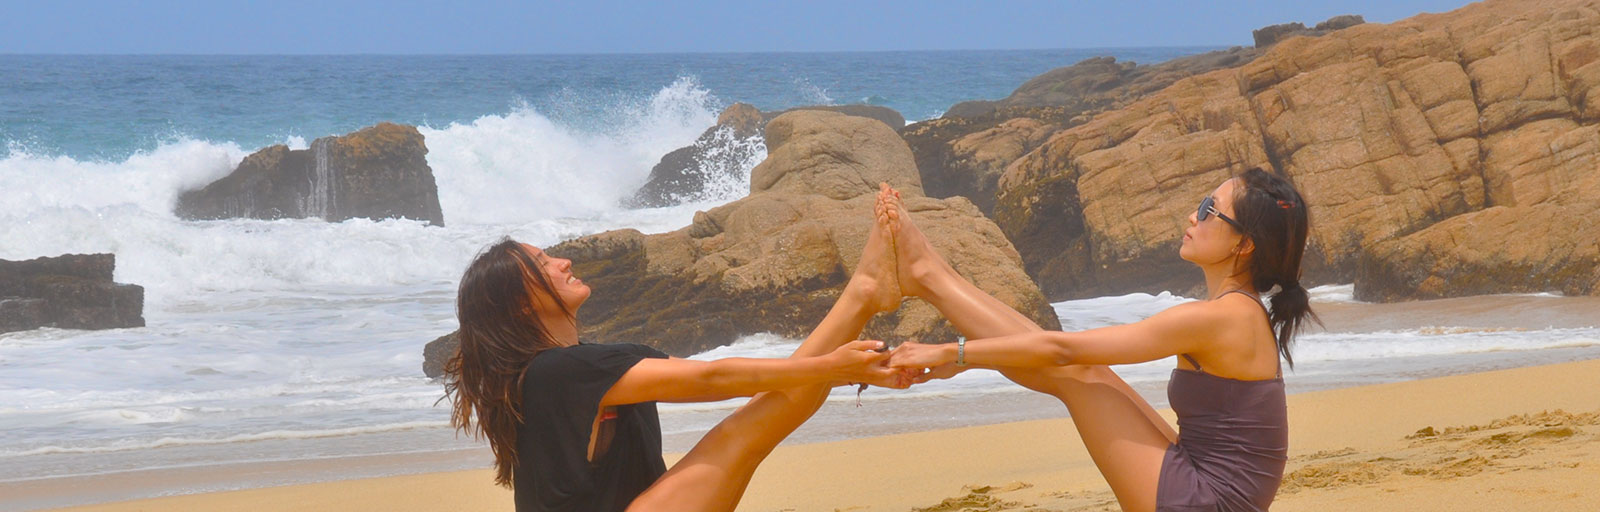 Yoga Retreat in Mexico: Partner Yoga on the Beach